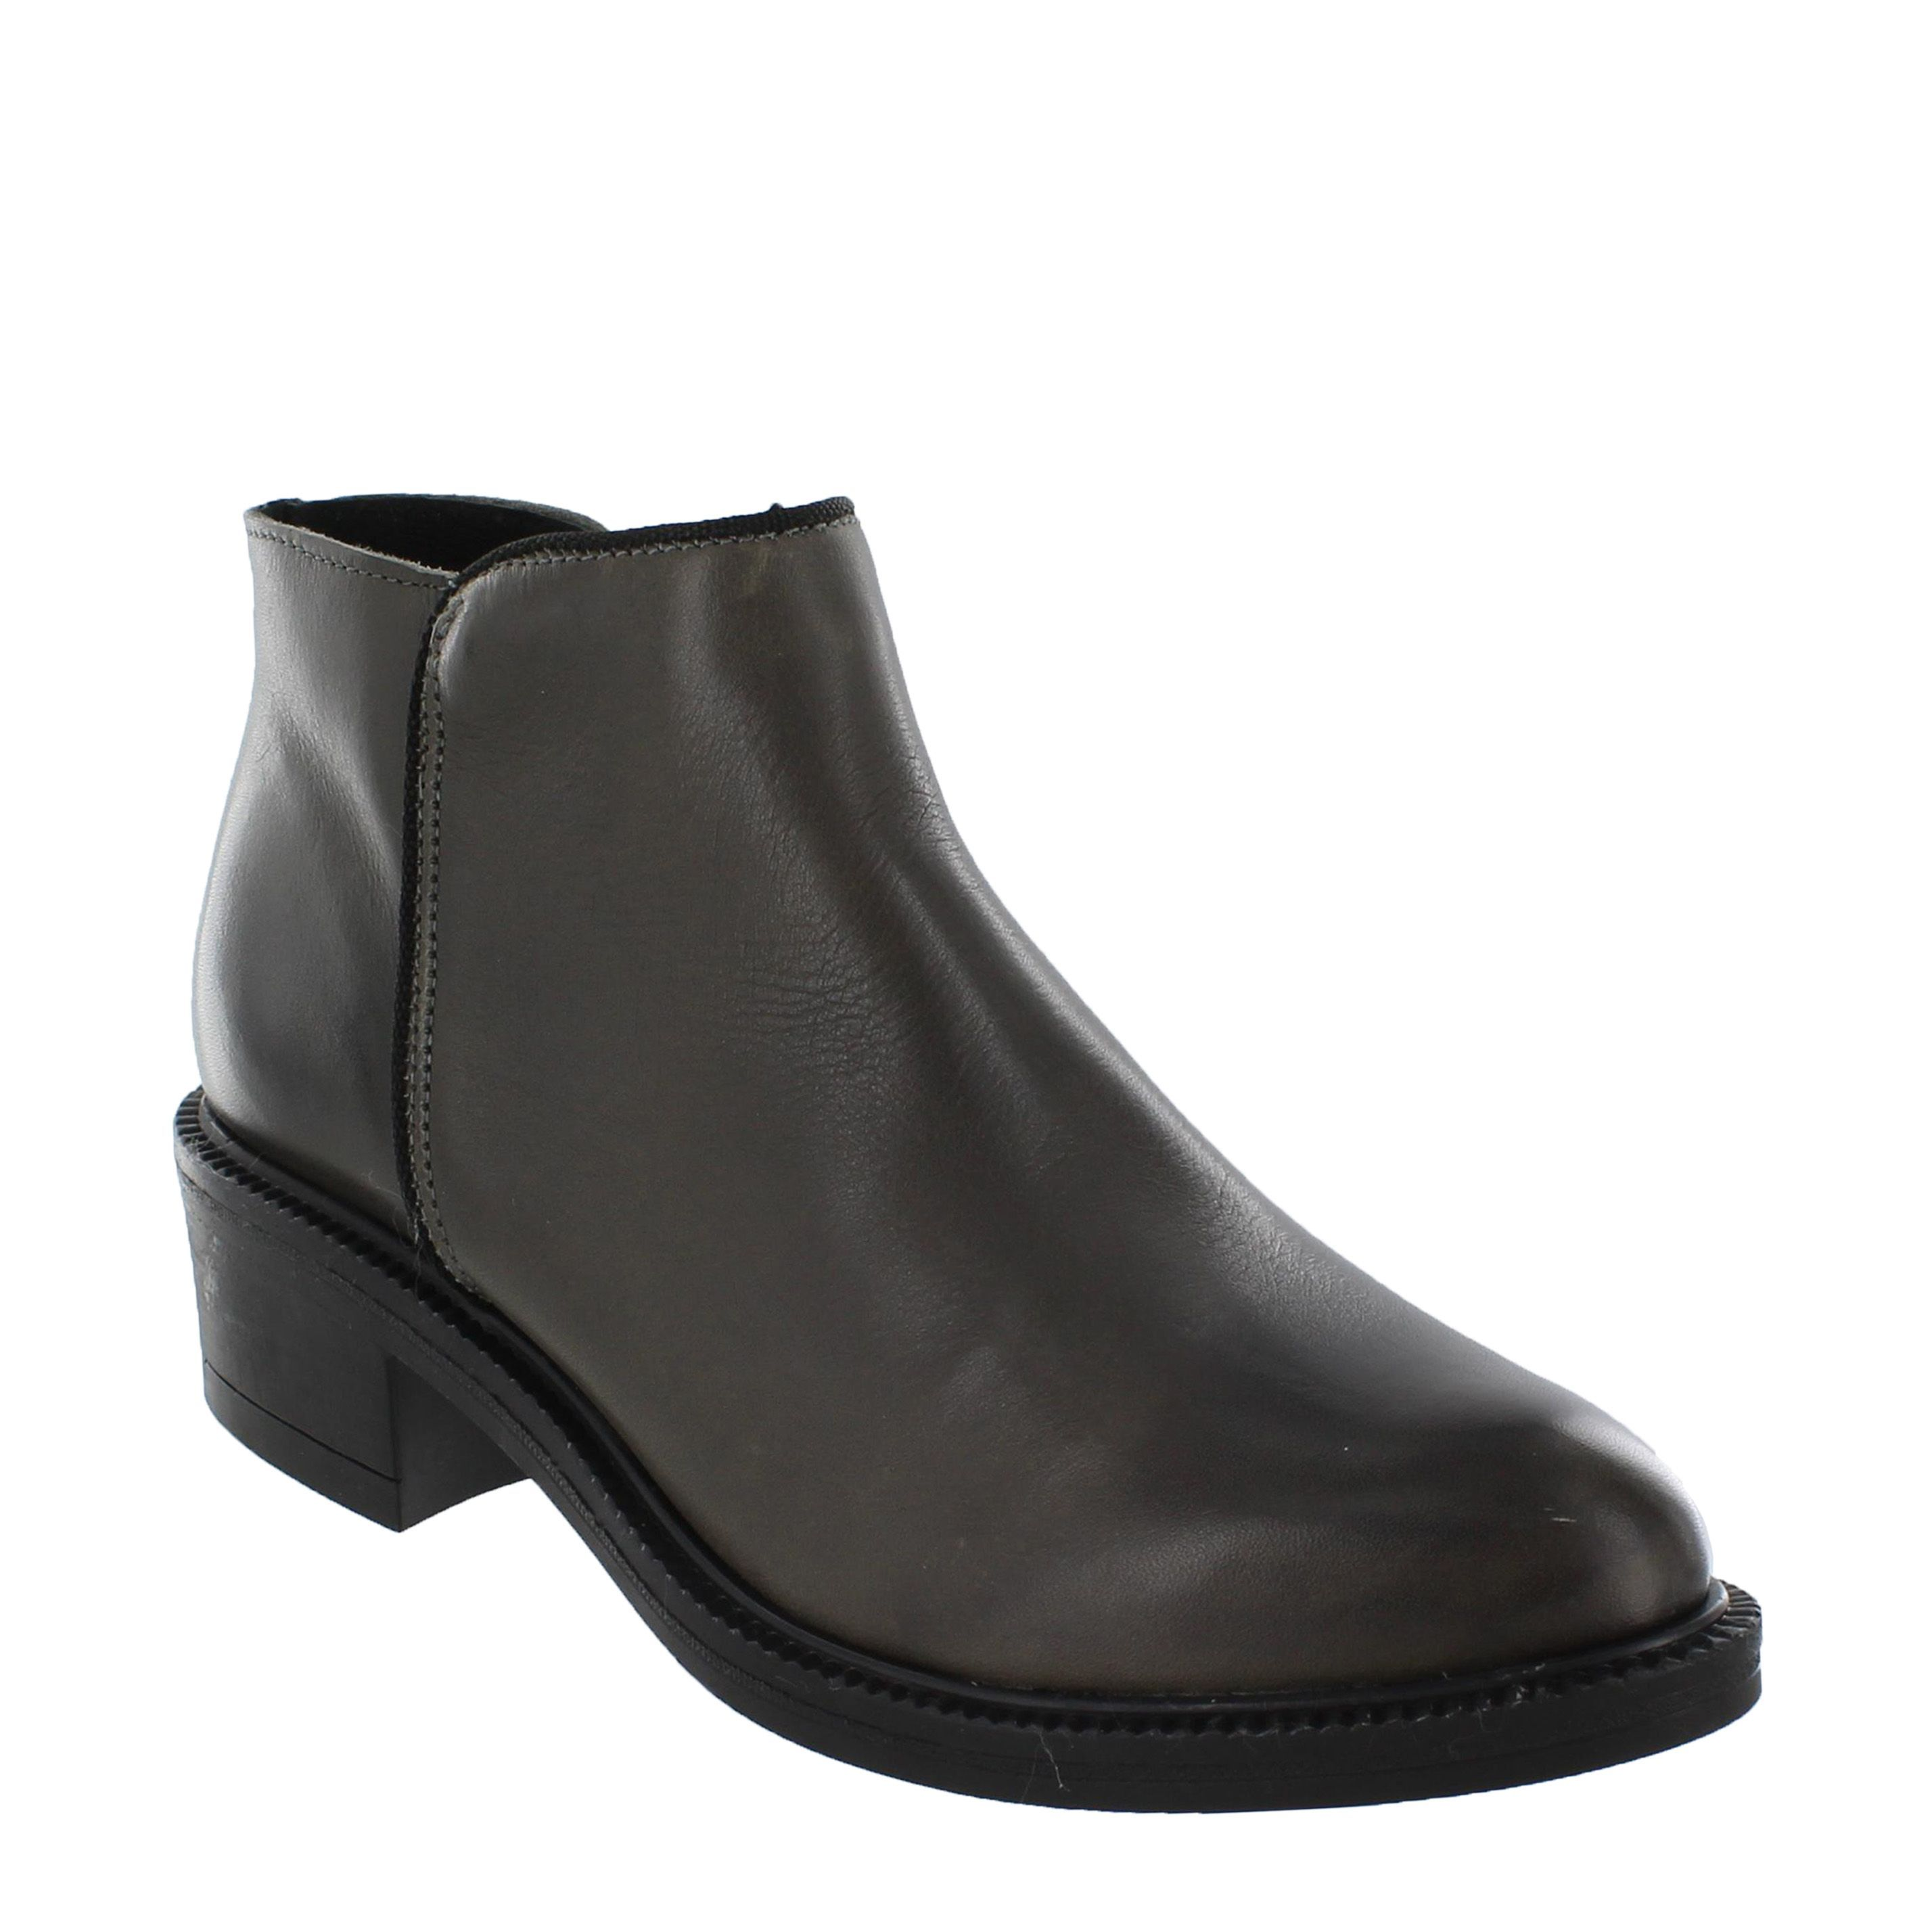 Marta Jonsson Leather ankle boot, Grey. Women's Ankle BootsGrey ...